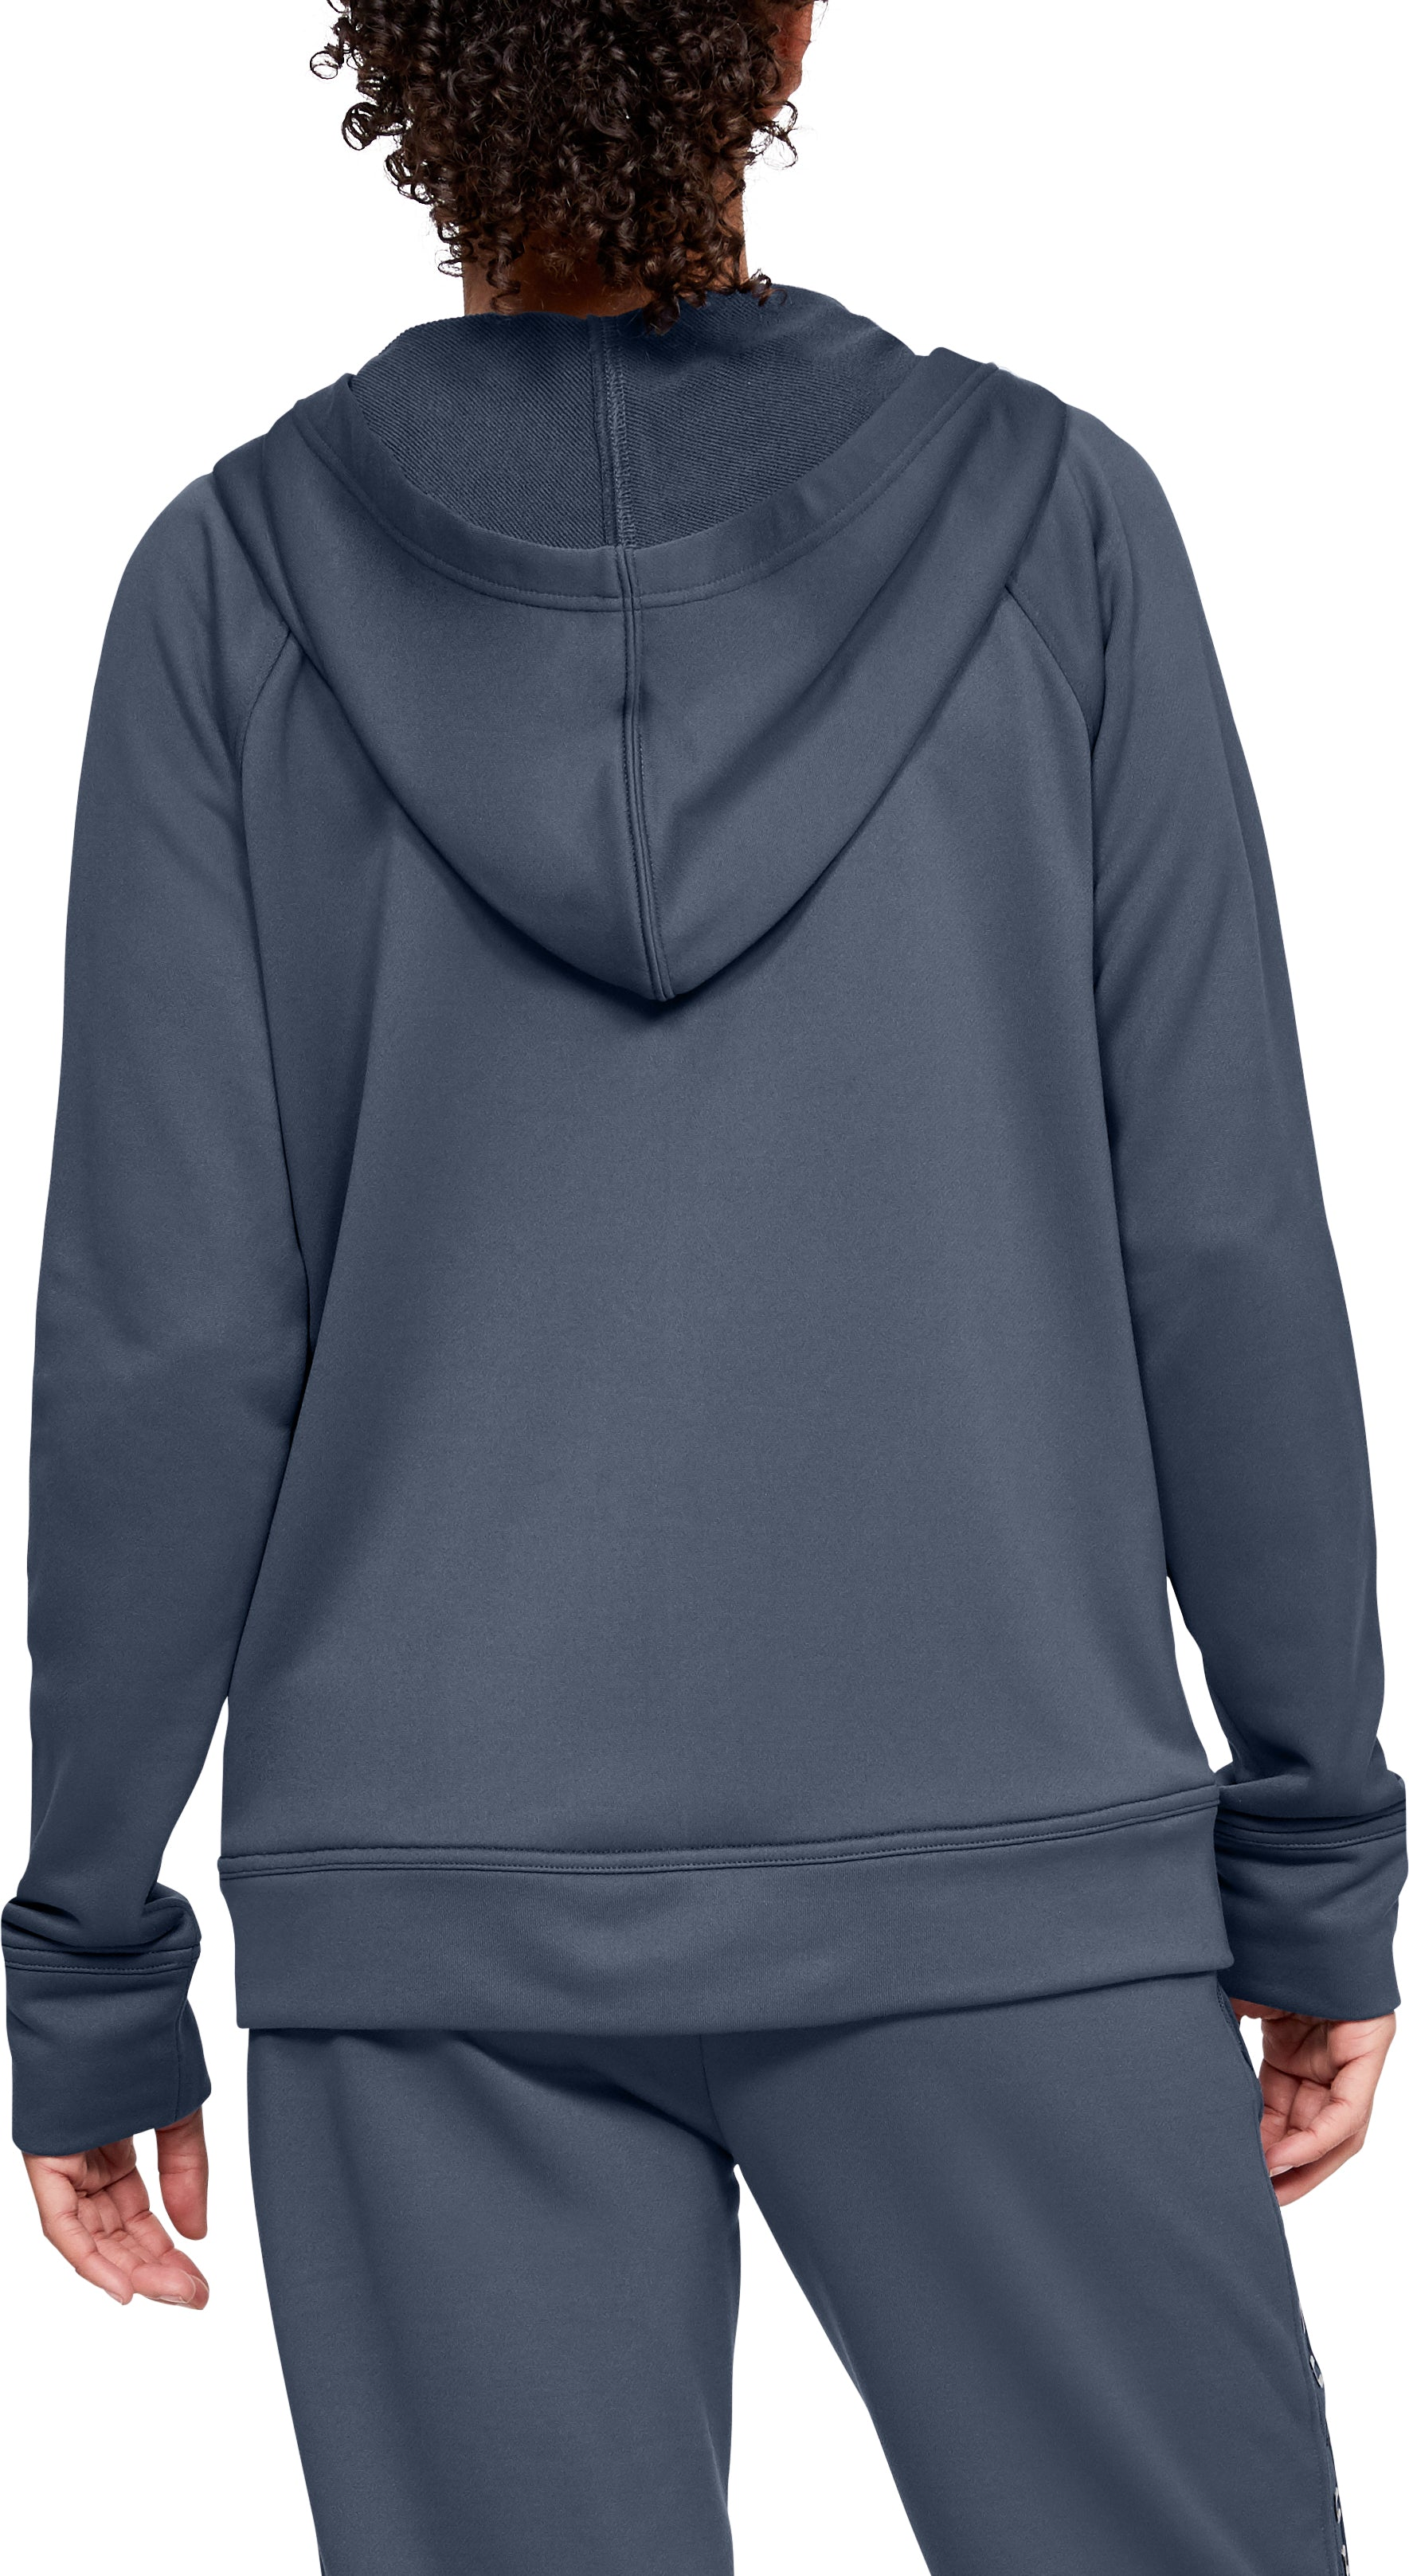 Under Armour Womens Favorite Terry Fz Bomber Warm-up Top